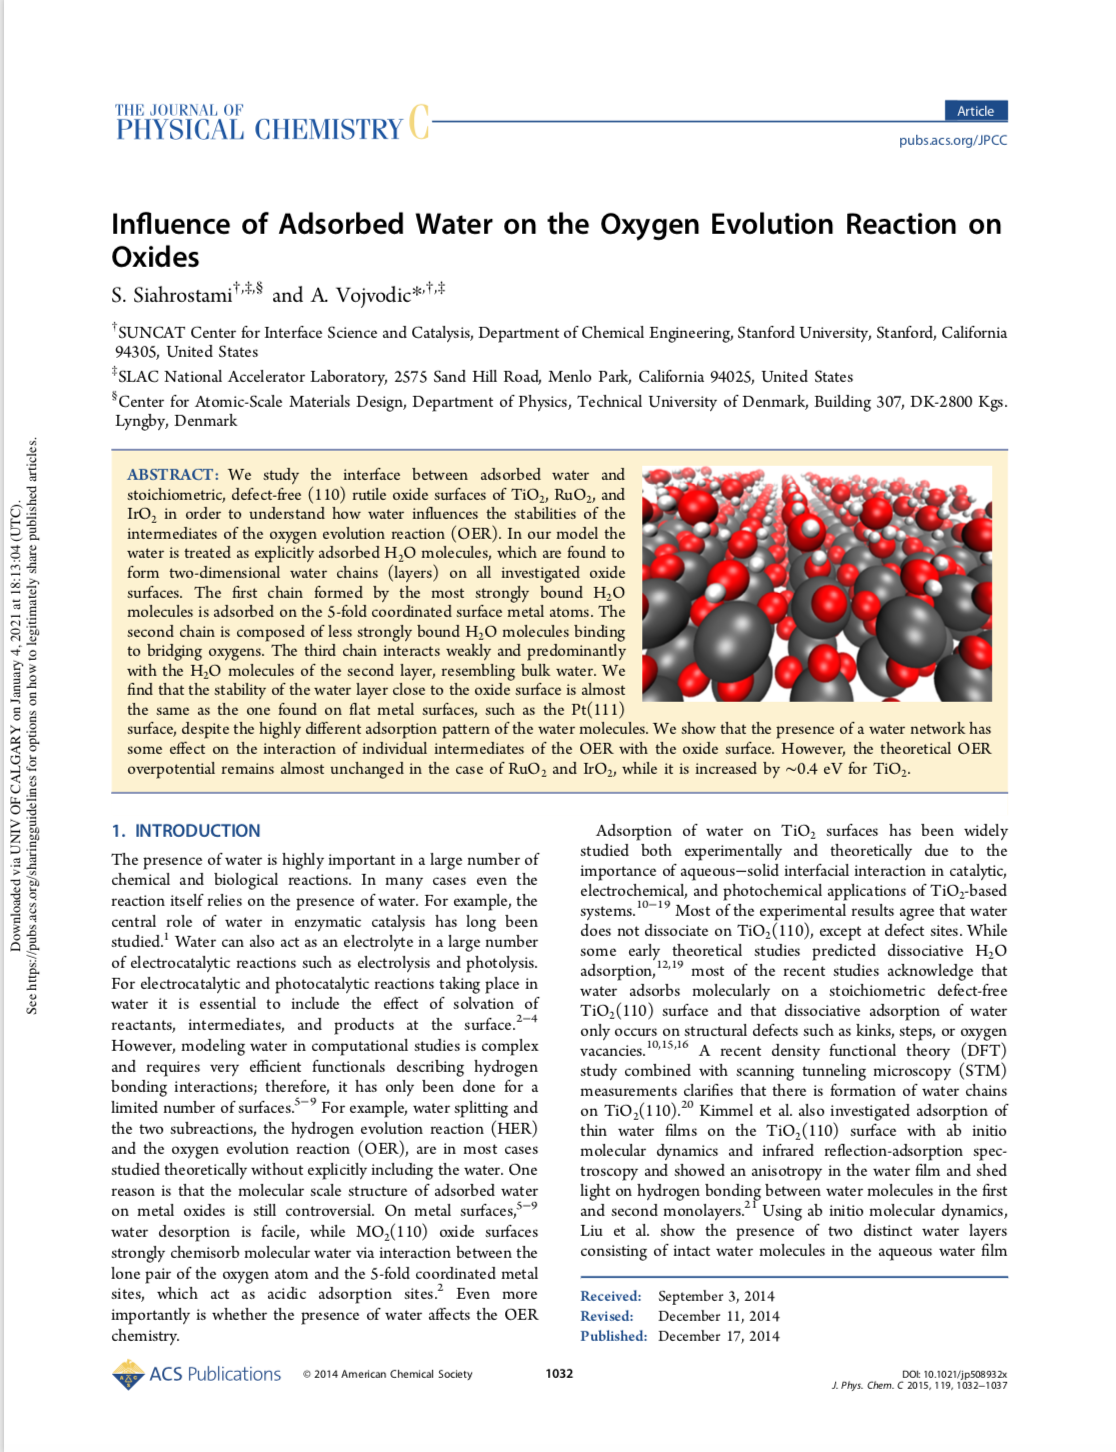 Influence of Adsorbed Water on the Oxygen Evolution Reaction on Oxides